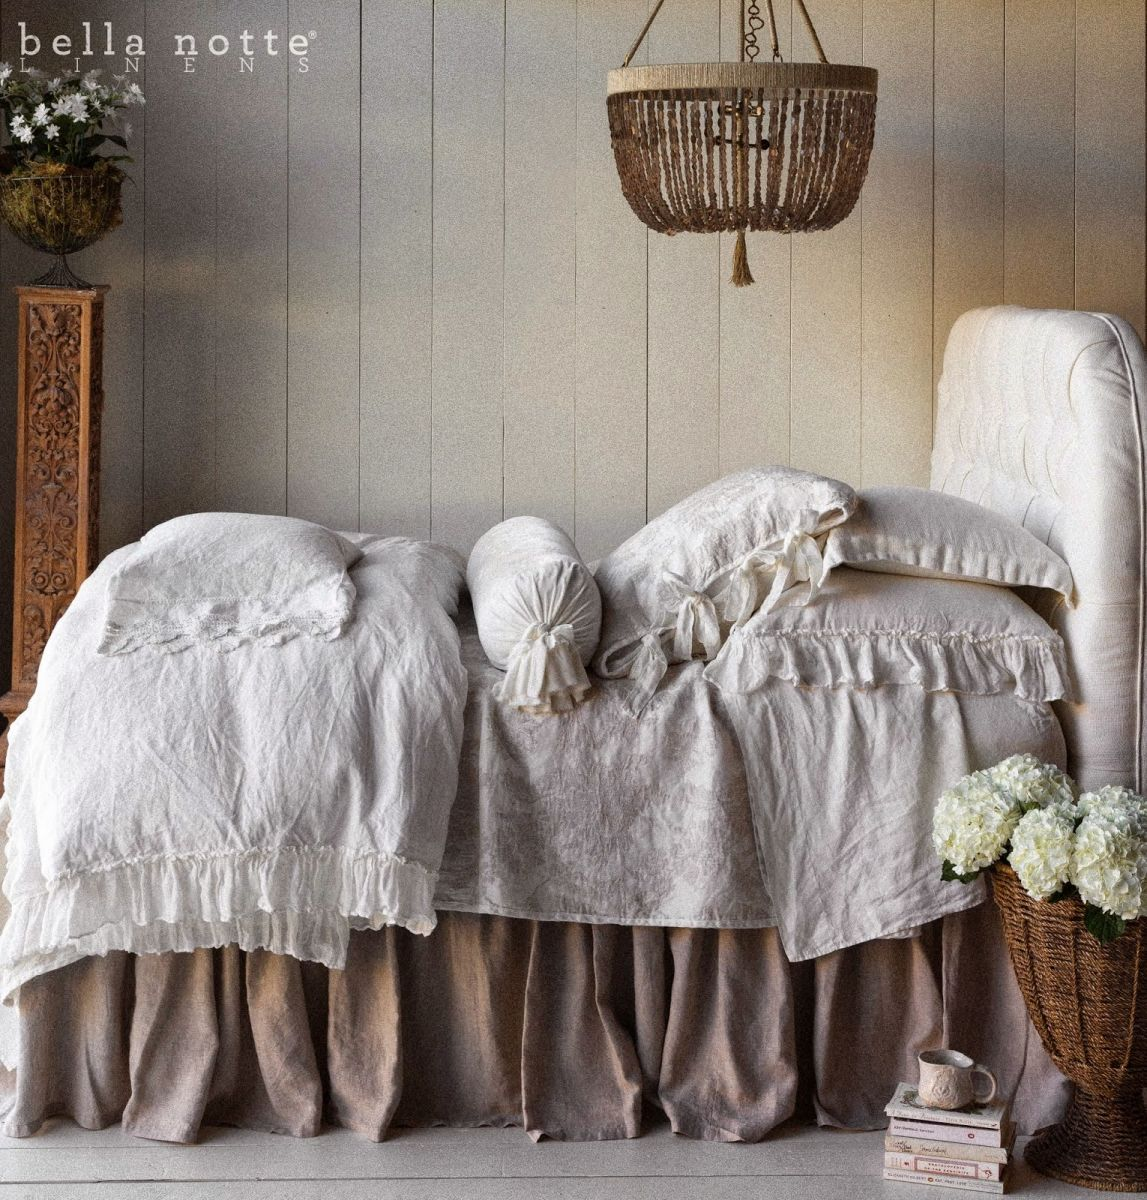 Marvelous BELLA NOTTE LINENS | Largest Selection In The US For BELLA NOTTE, STORE,  BEDDING, FABRICS